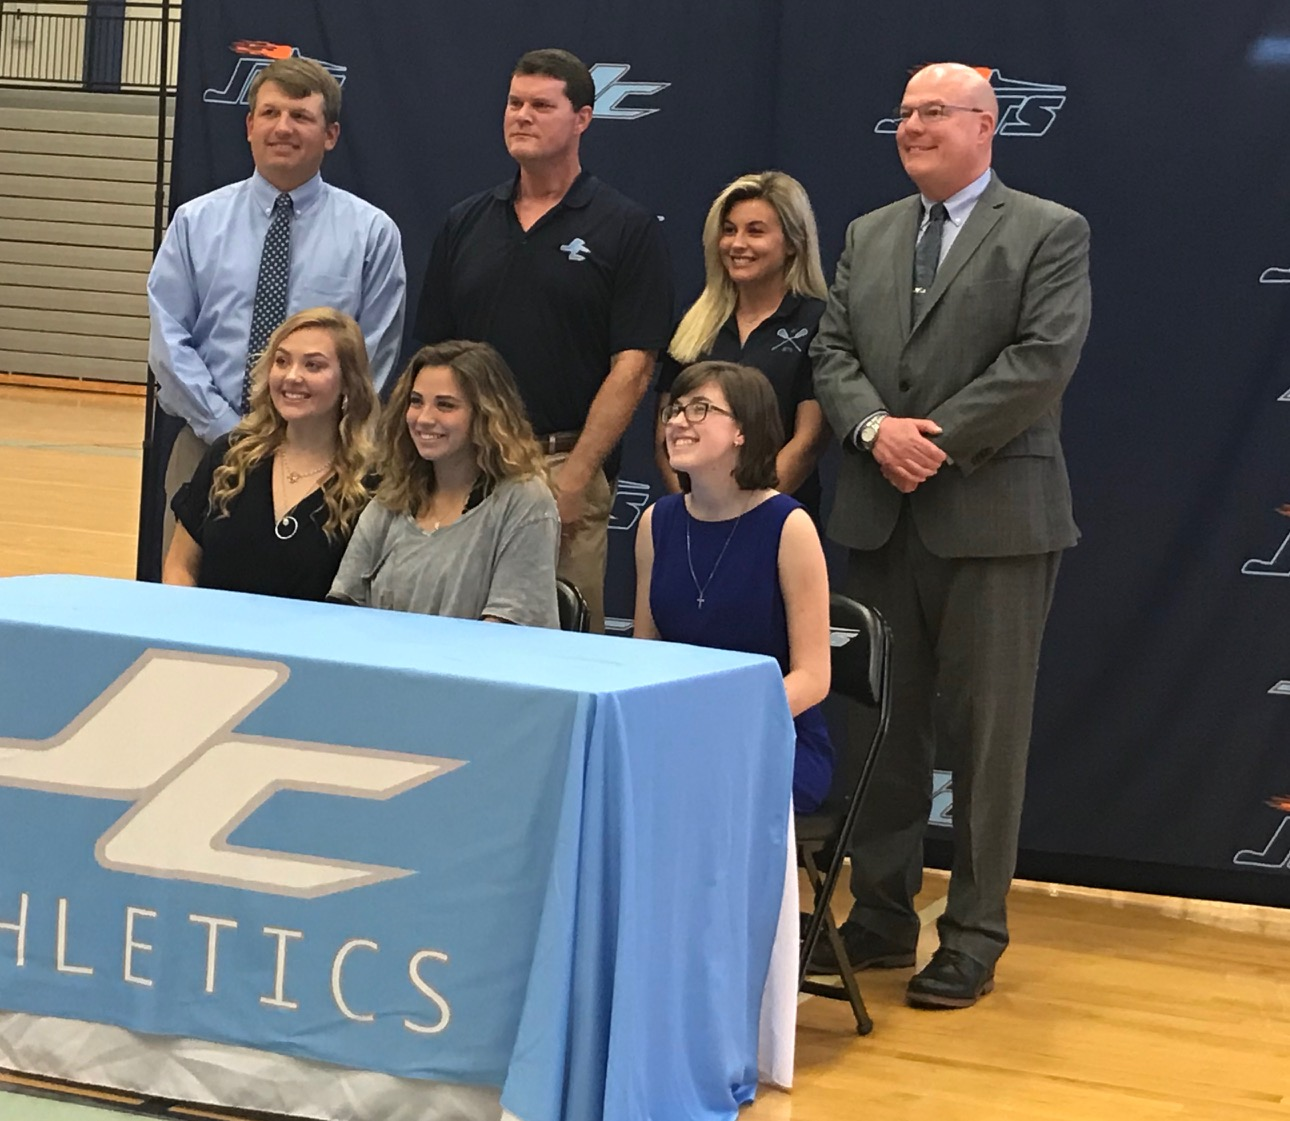 Three Jets Sign for Lacrosse in College